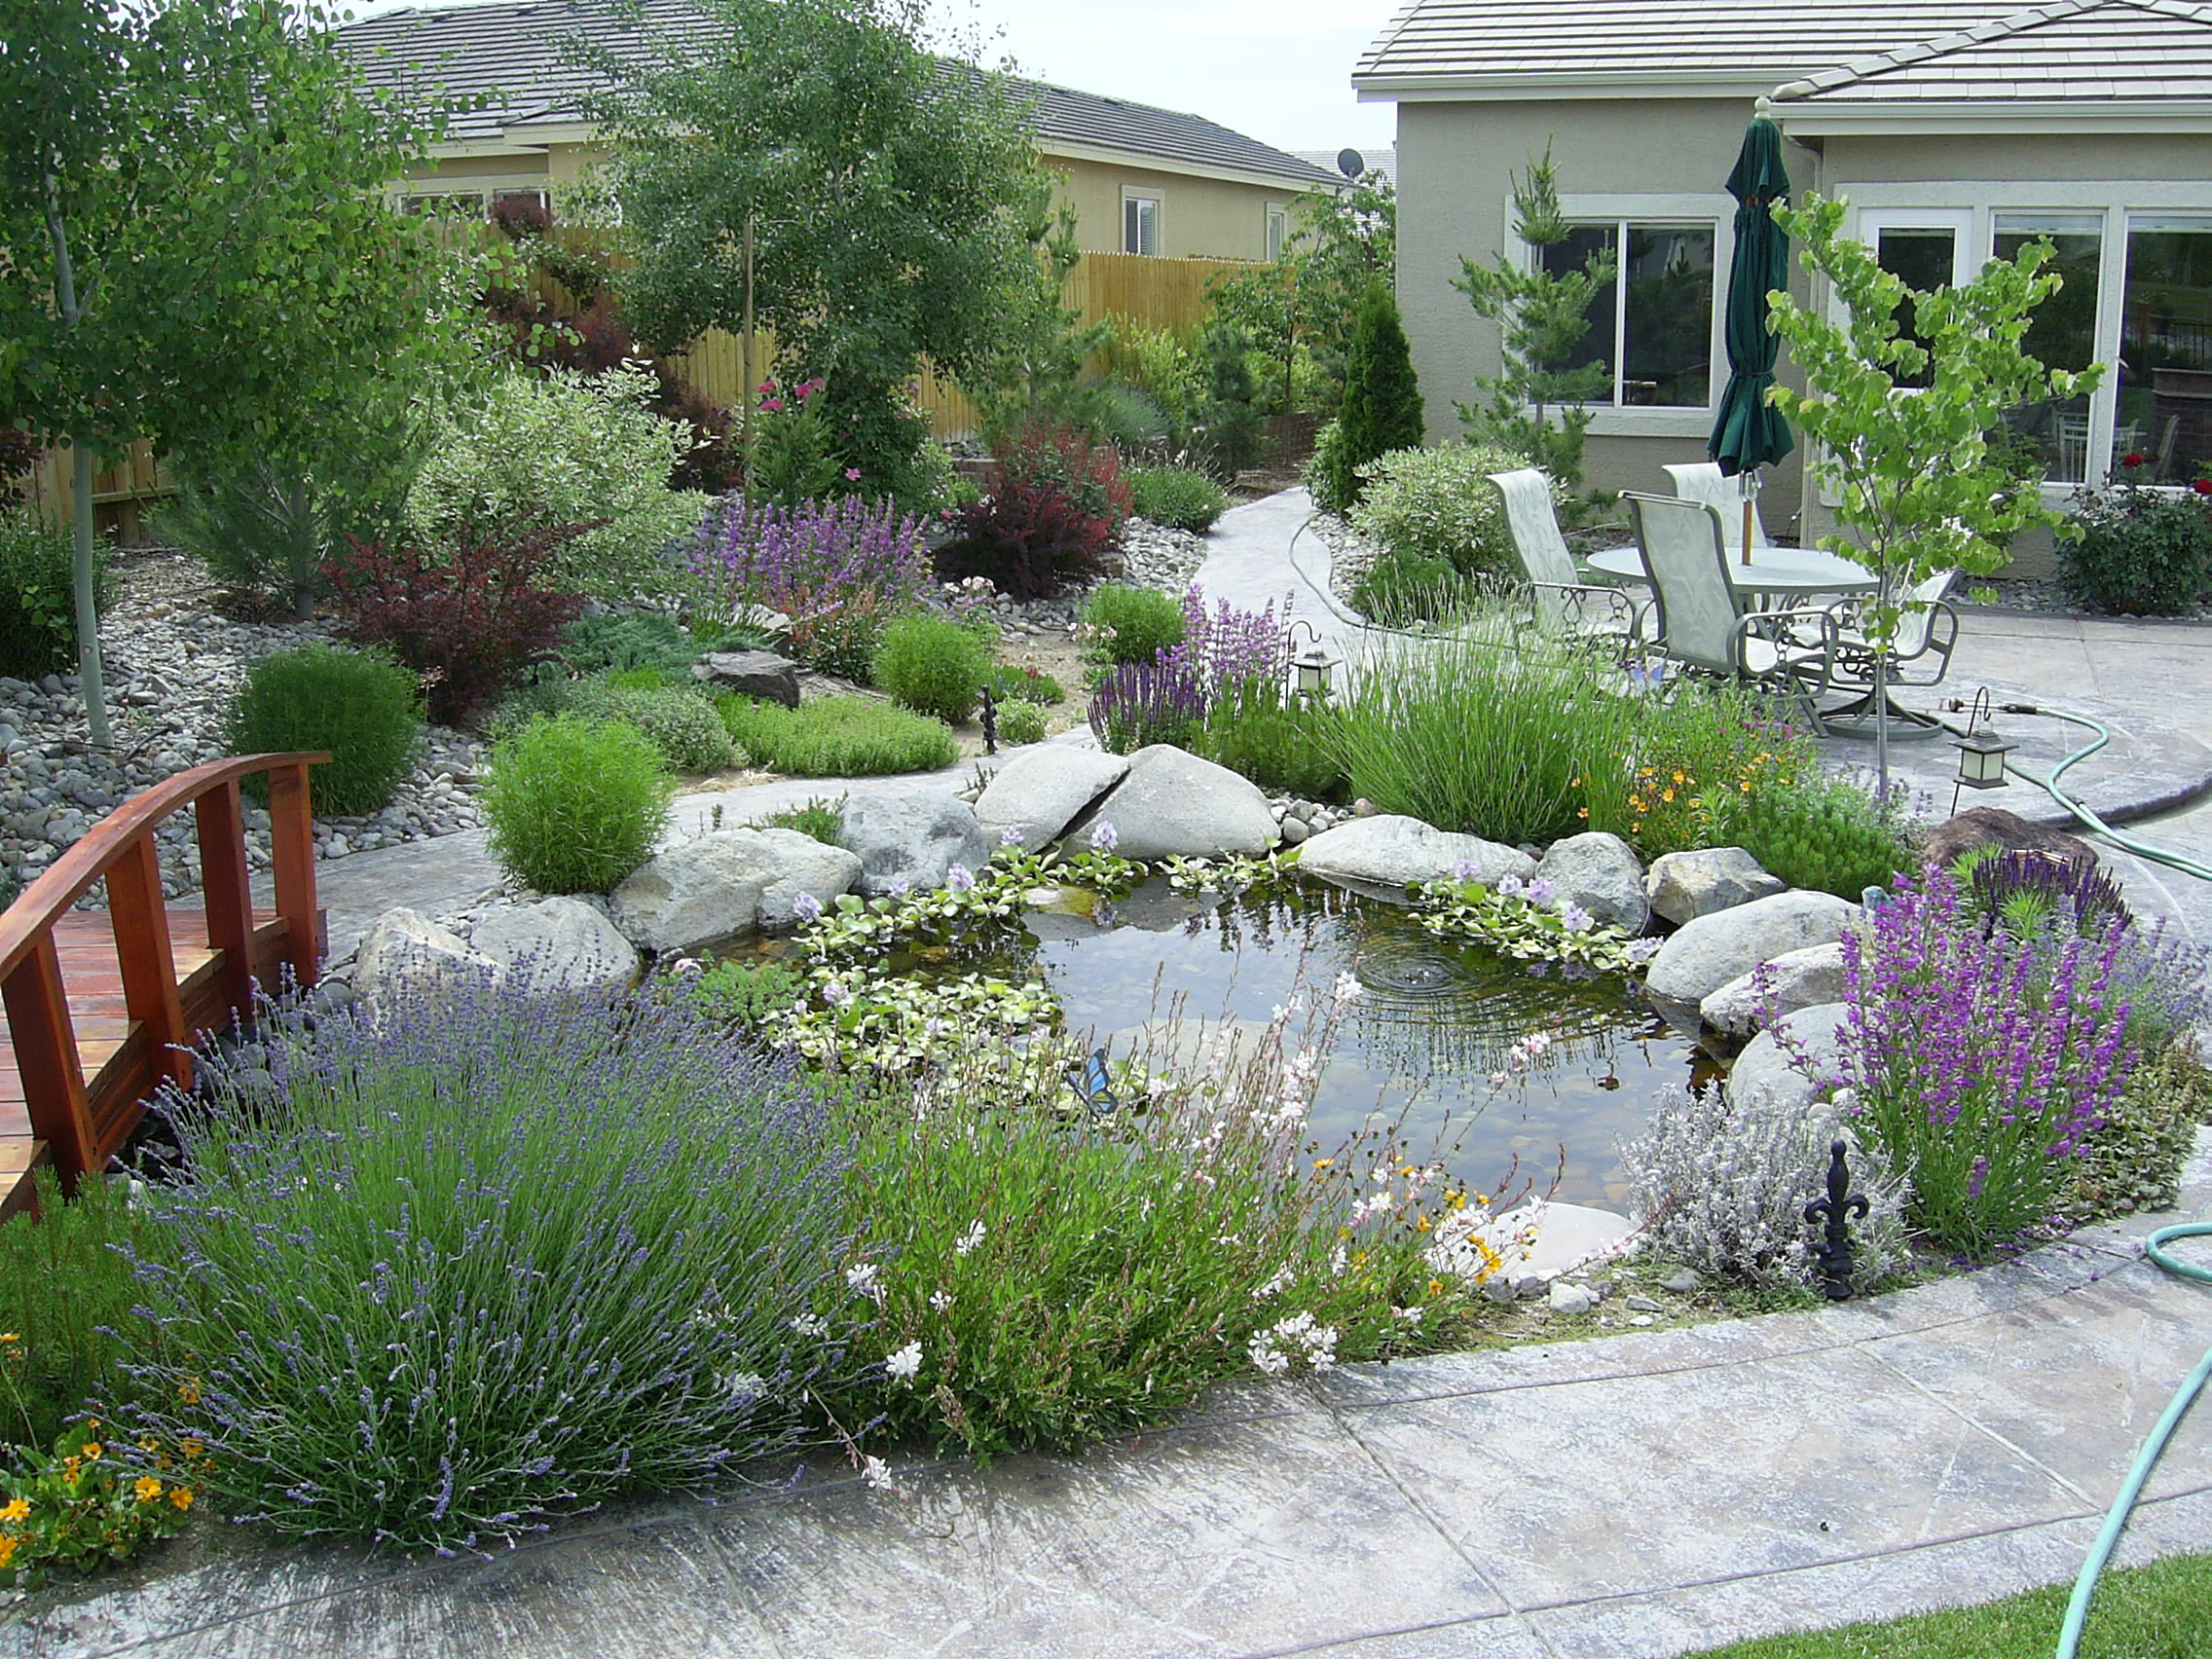 Landscape and garden design implications of water for Design landscape garden